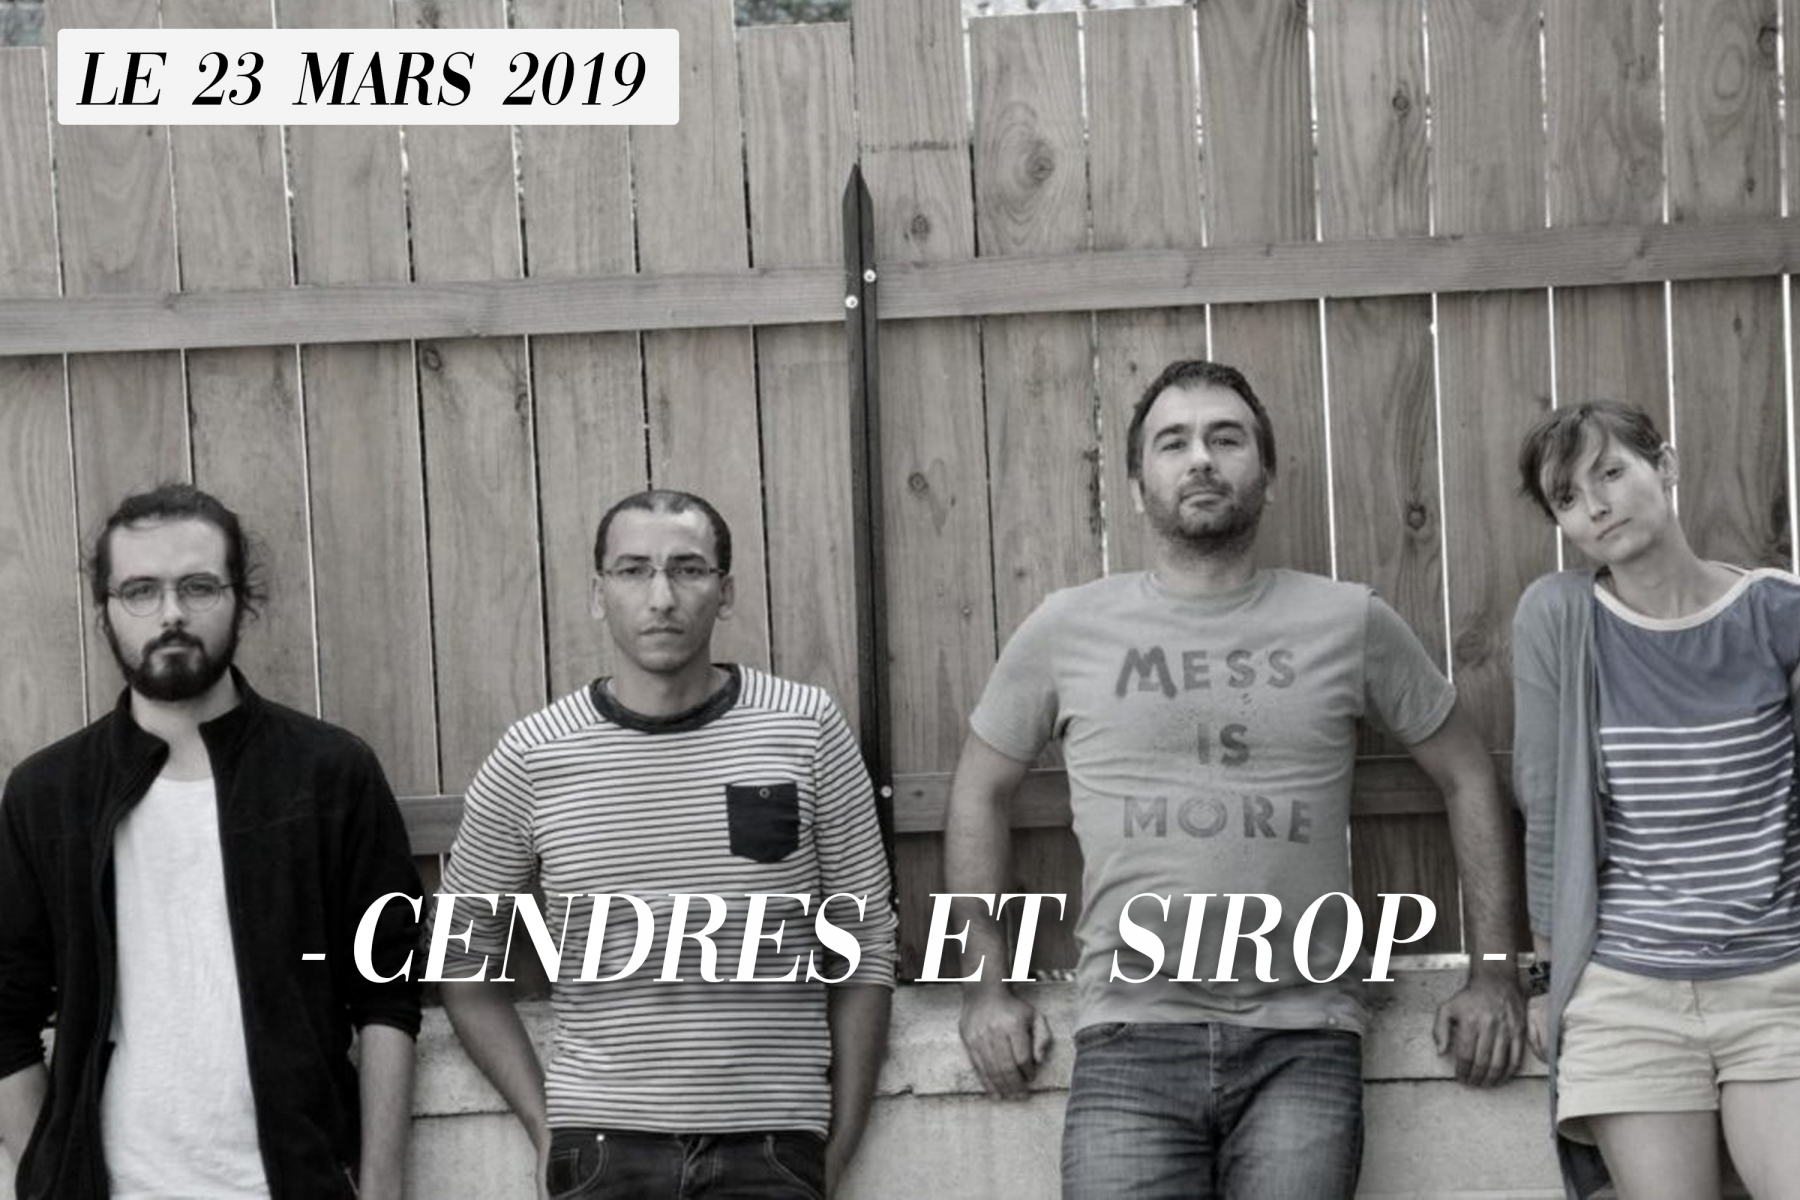 Cendres-et-Sirop